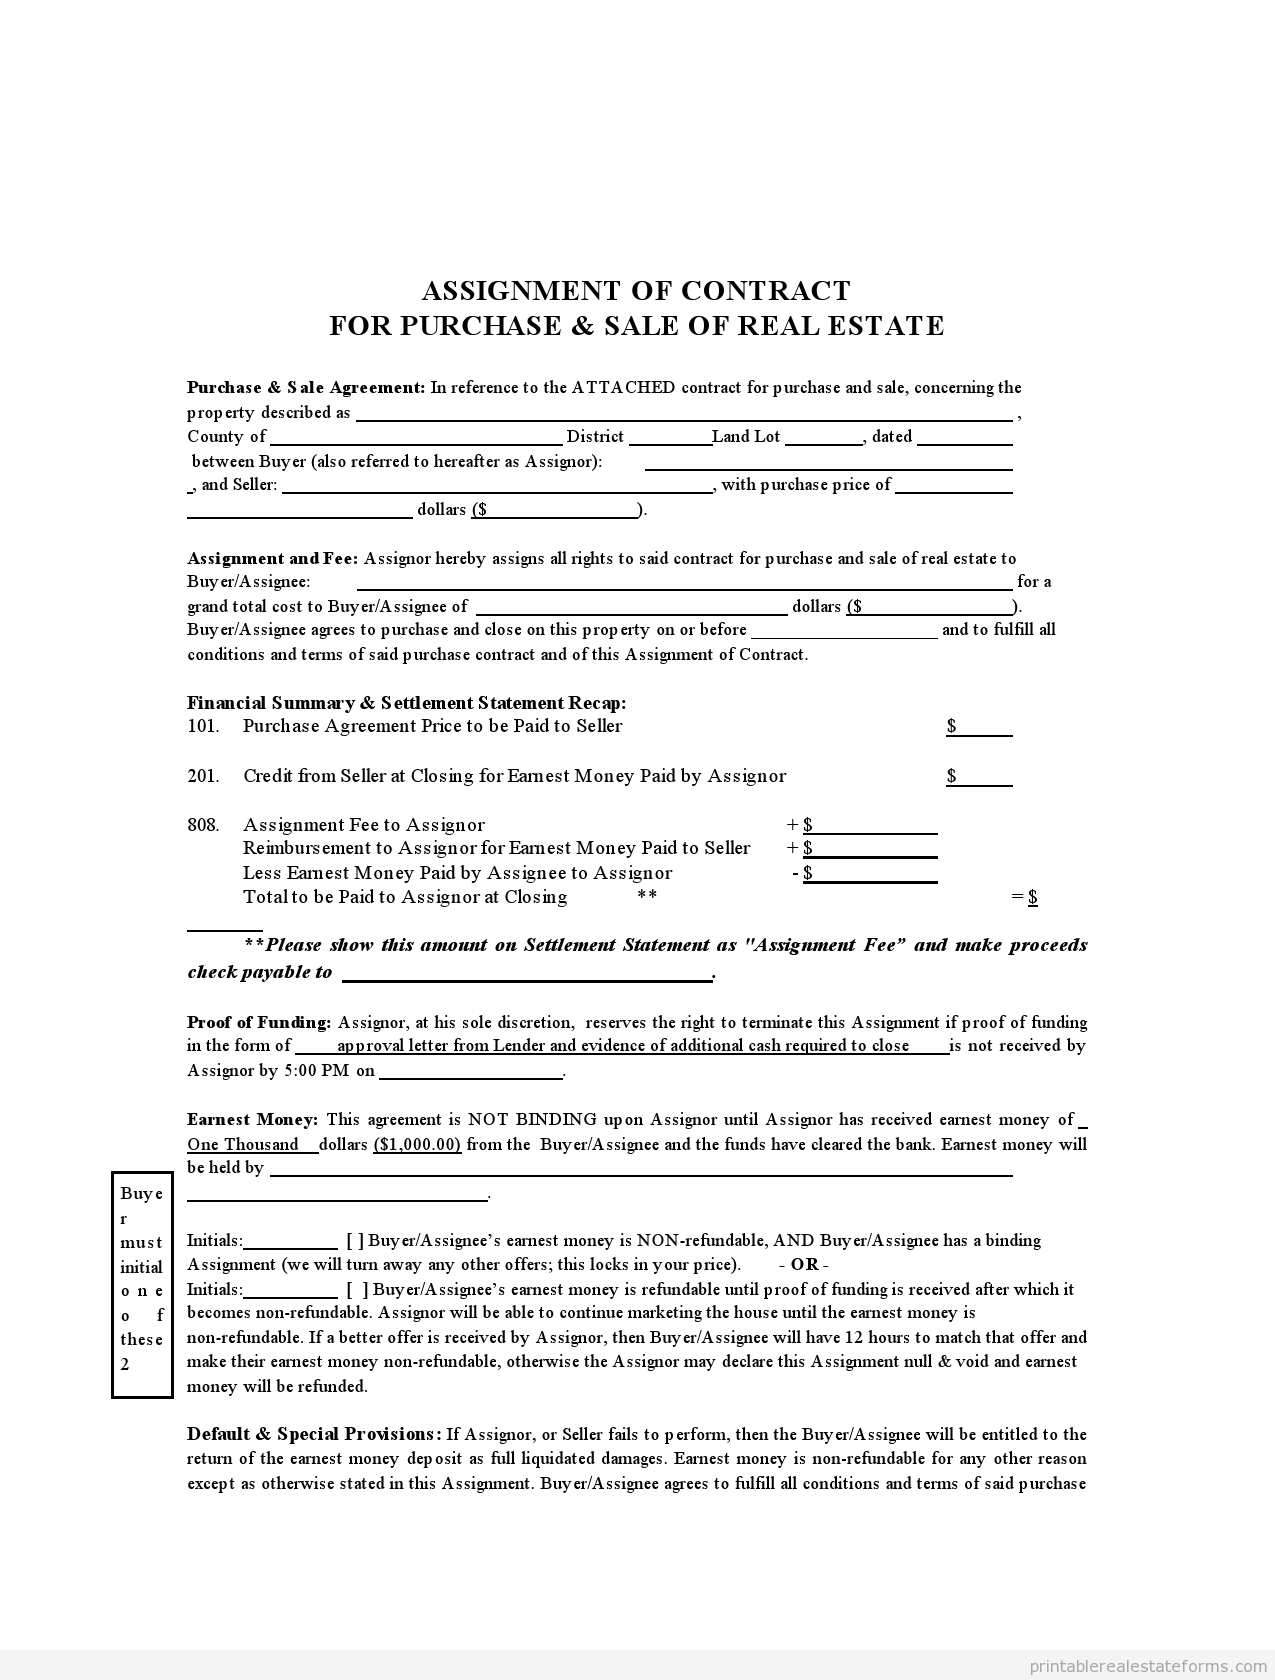 Assignment of contract form